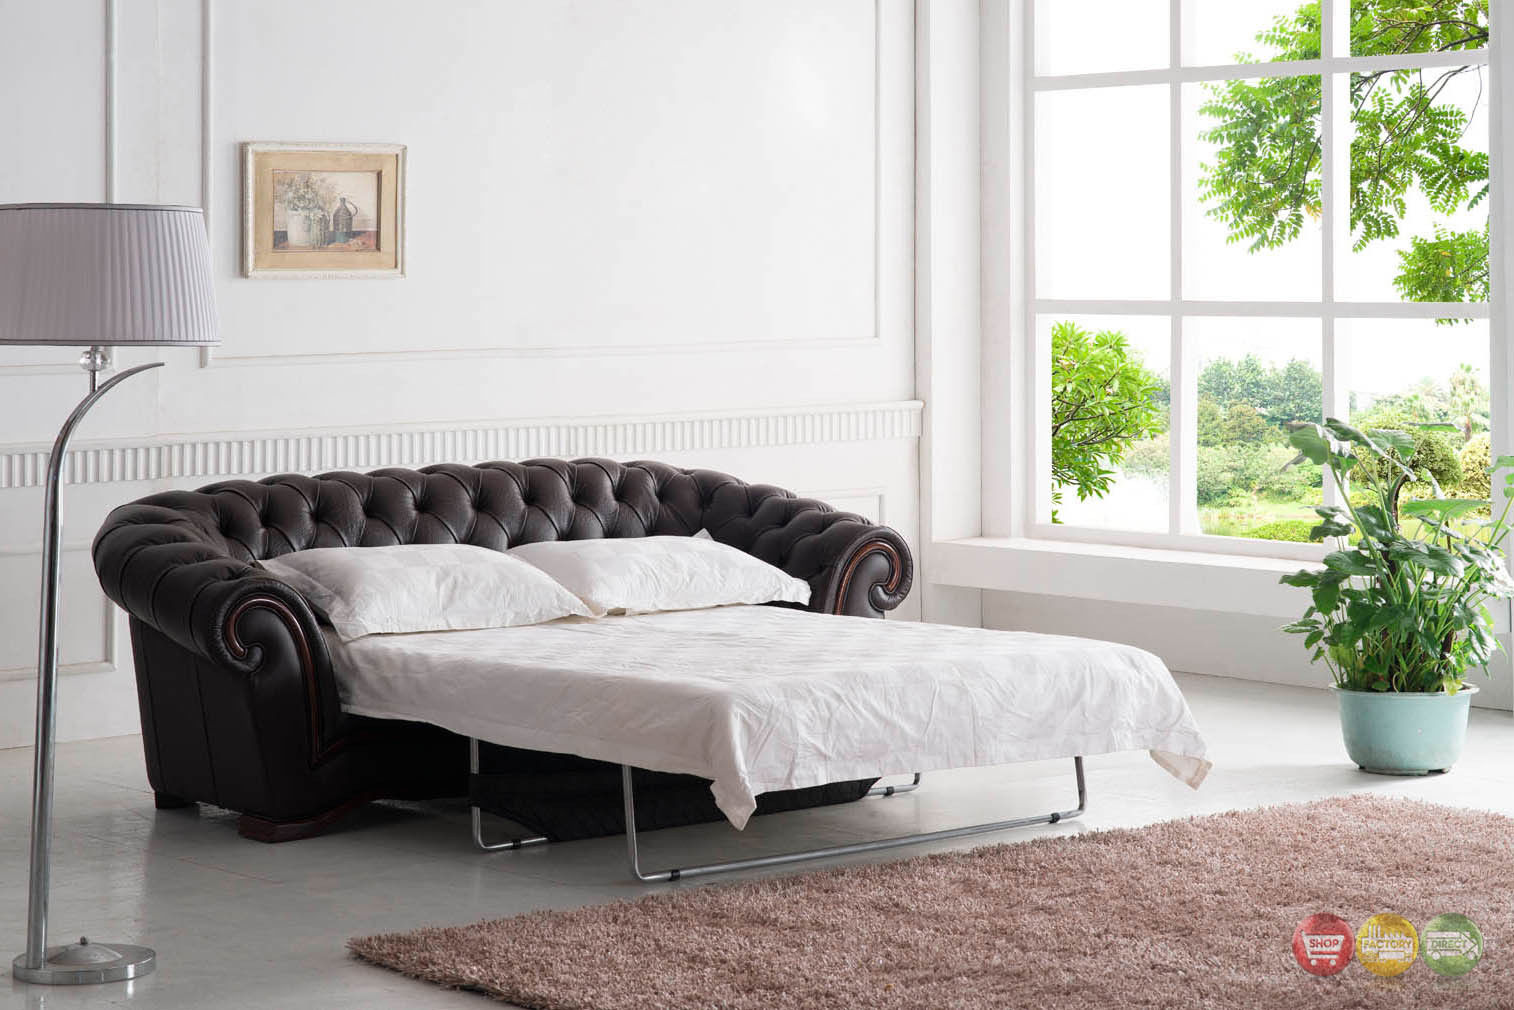 Tufted sleeper sofa italian leather sleeper sofa for Tufted leather sleeper sofa